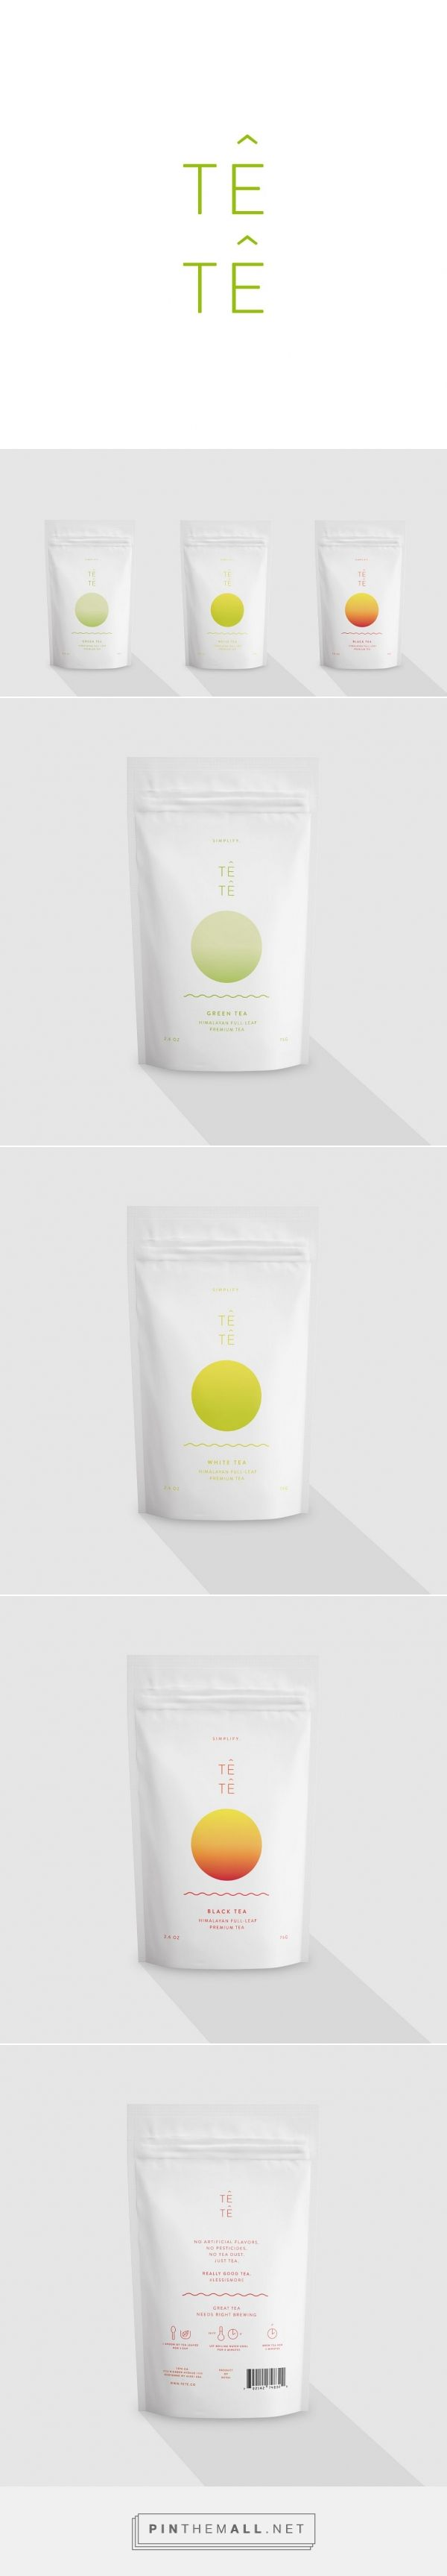 Têtê – tea packaging